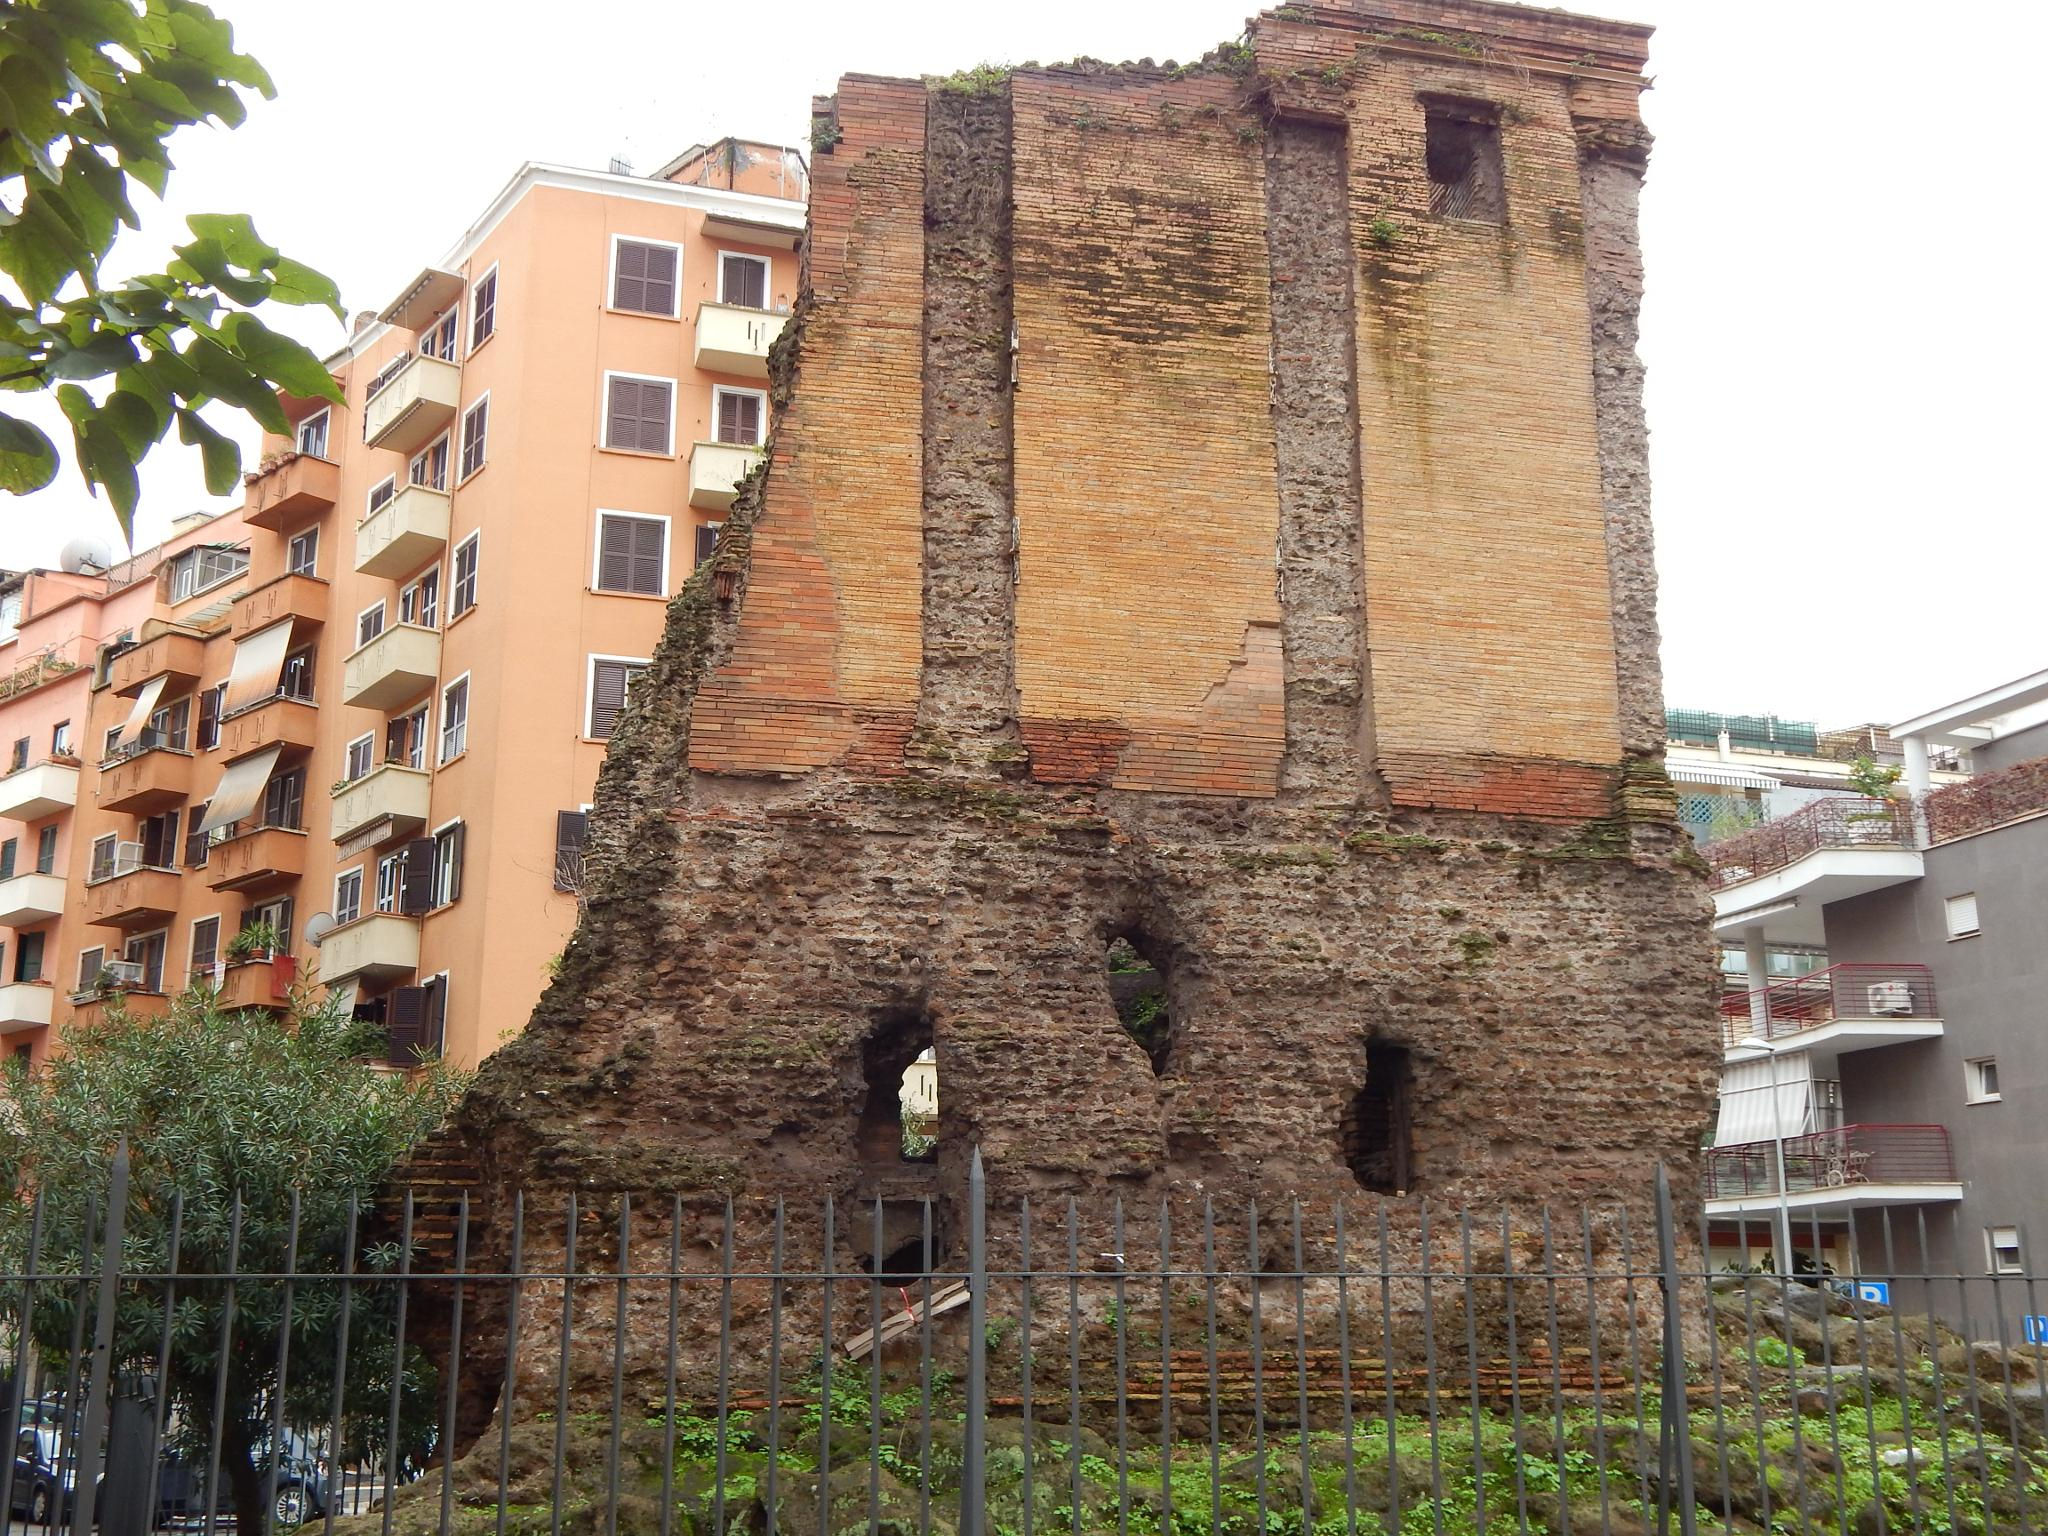 How to use the Tomb of Elio Calistio : just follow the scenes by Juan Carlos Mendez (jcarlmendez@gmail.com)